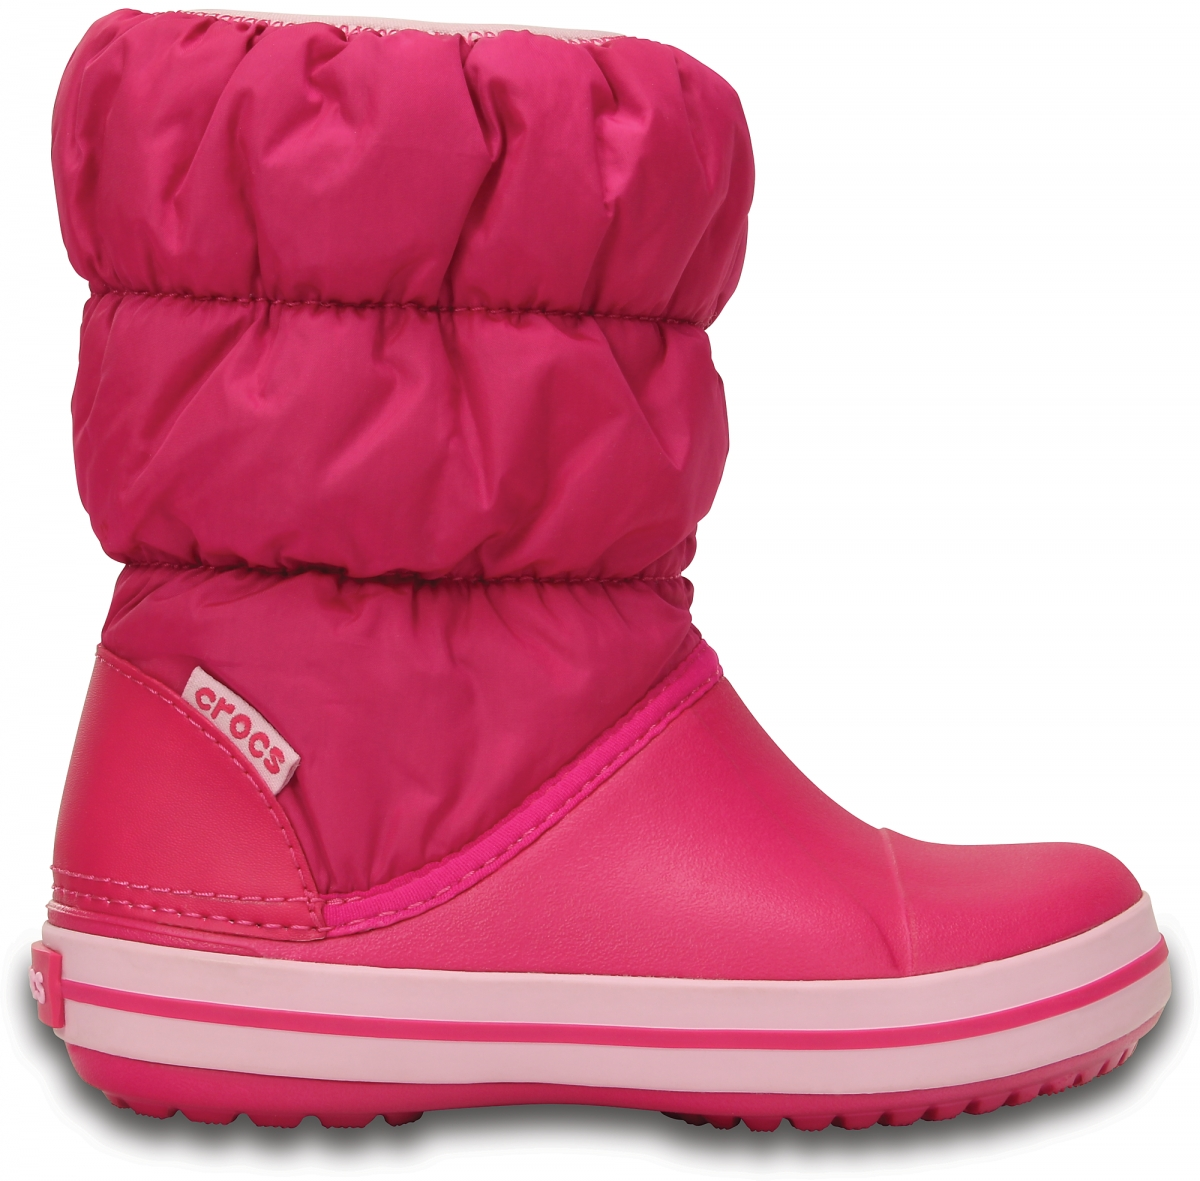 Crocs Winter Puff Boot Kids - Candy Pink, C13 (30-31)